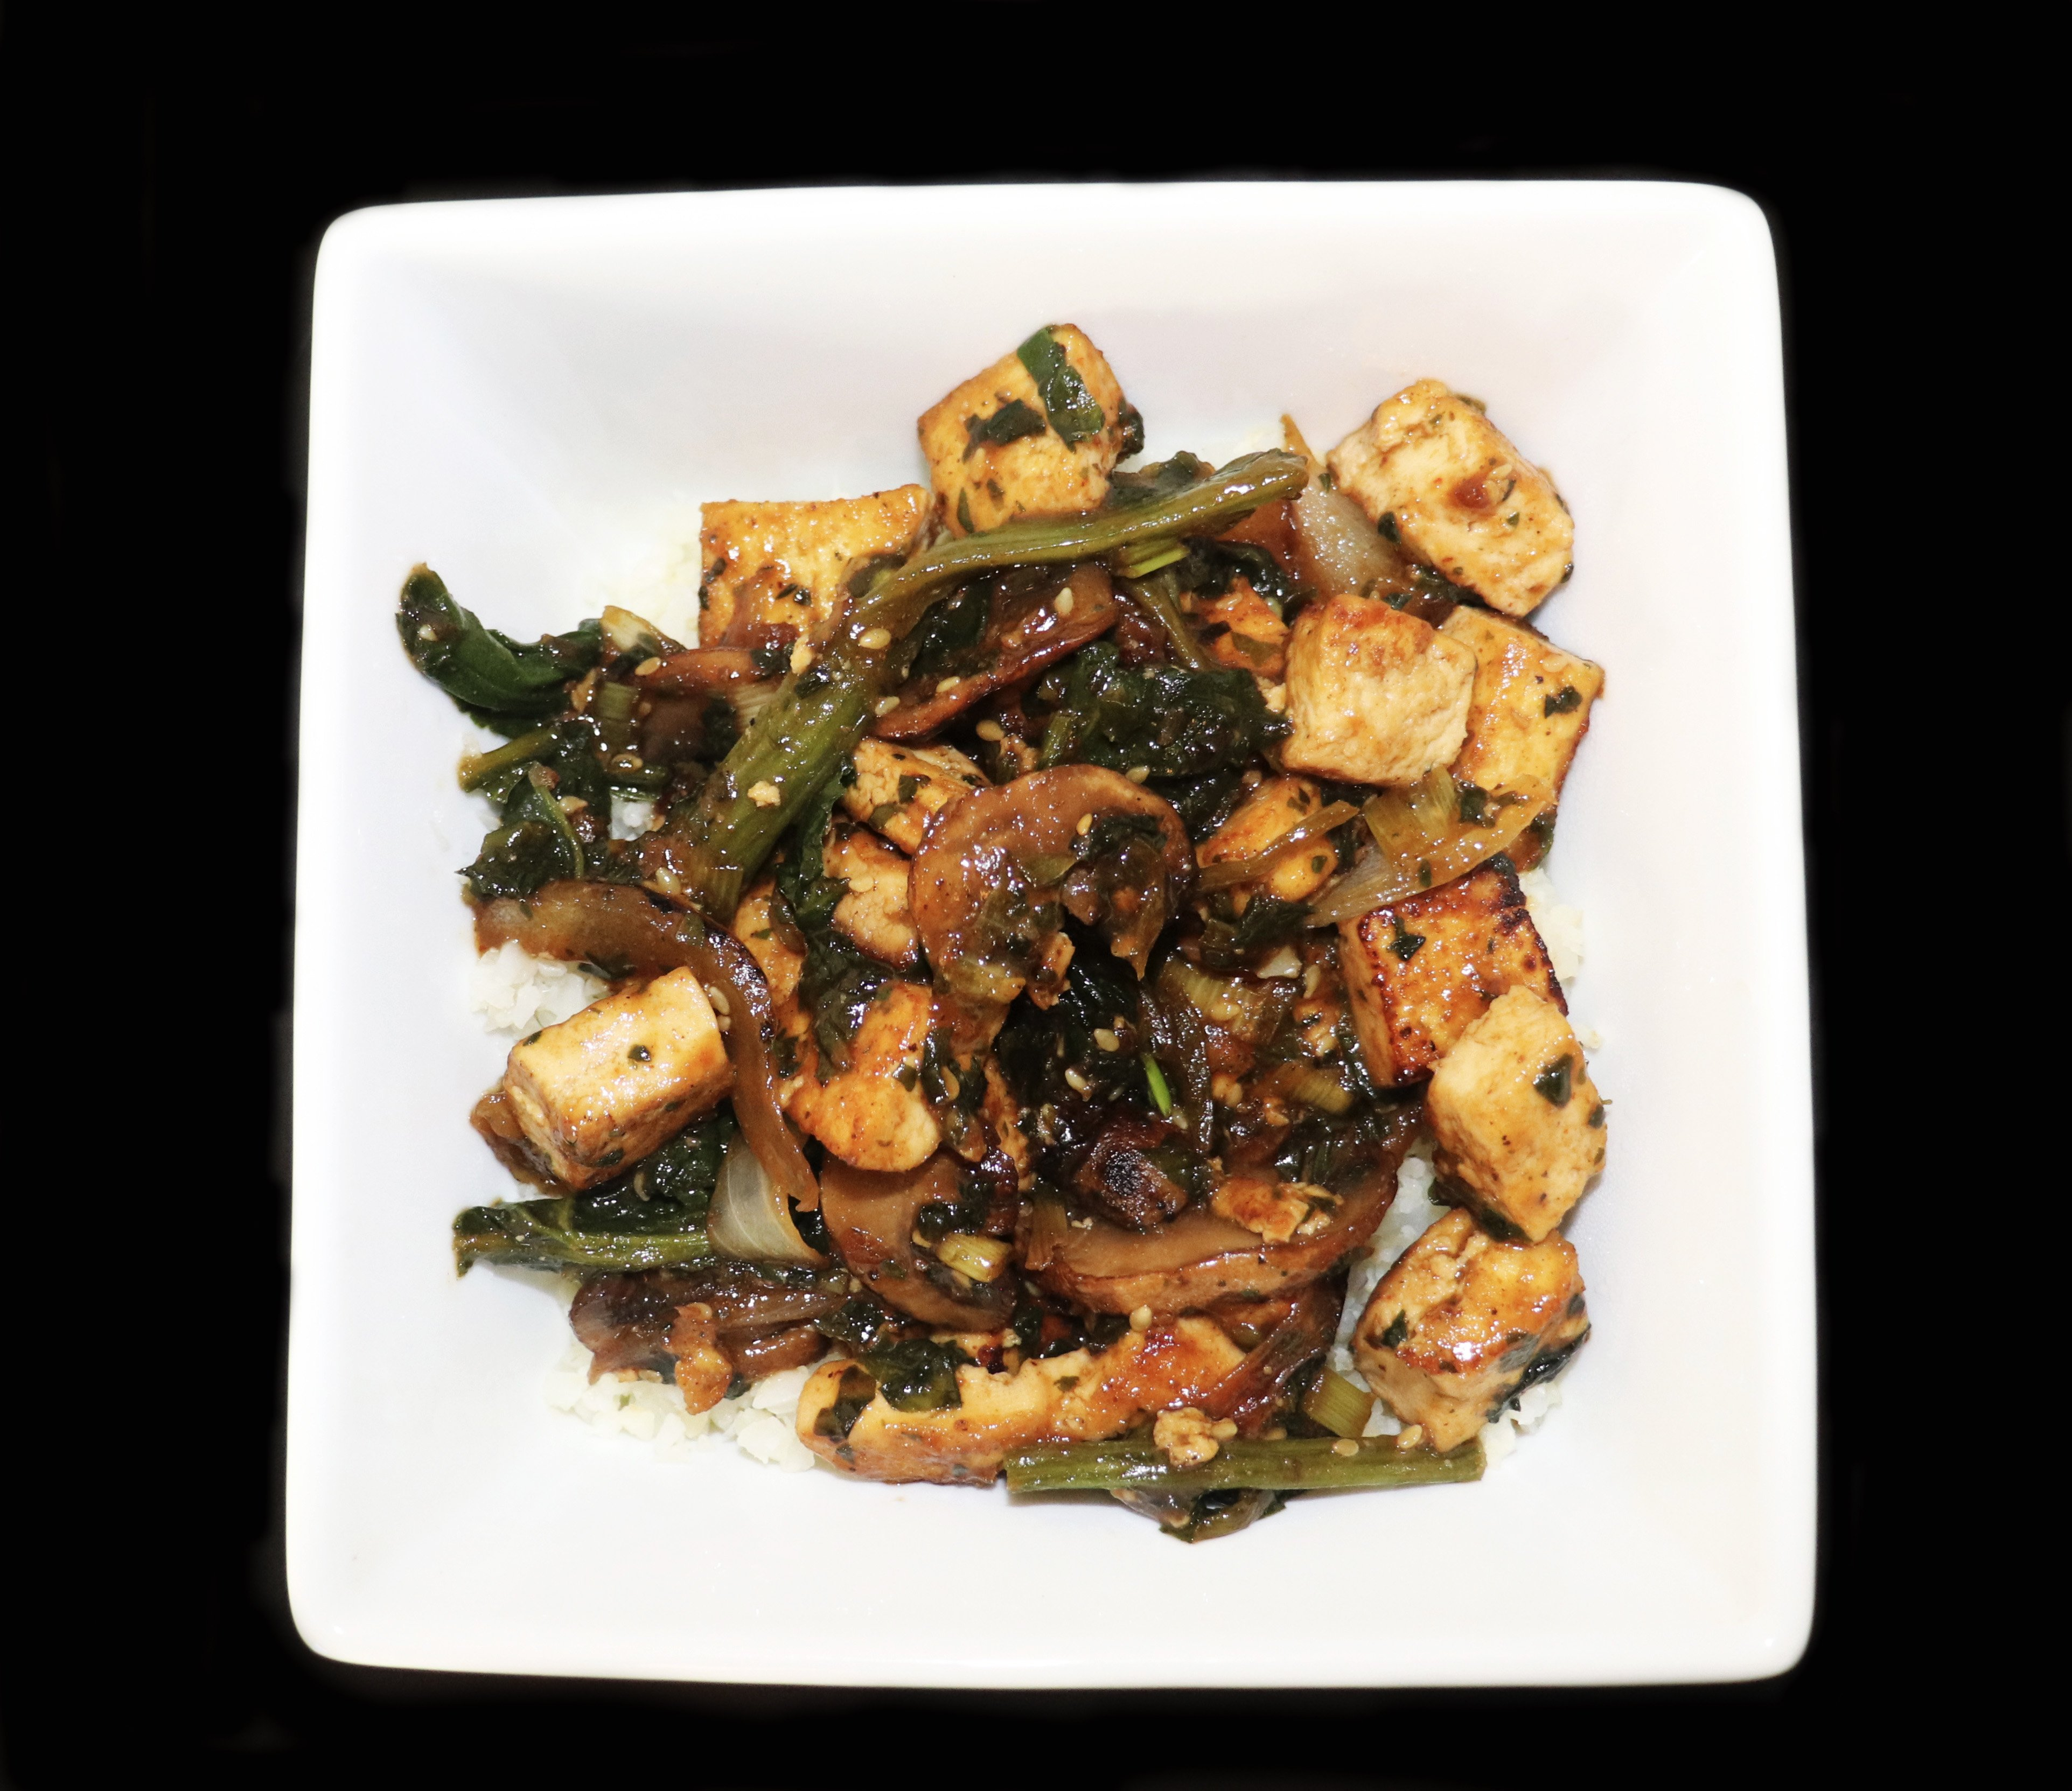 Tofu Stir Fry Recipe With Mushrooms & Spinach